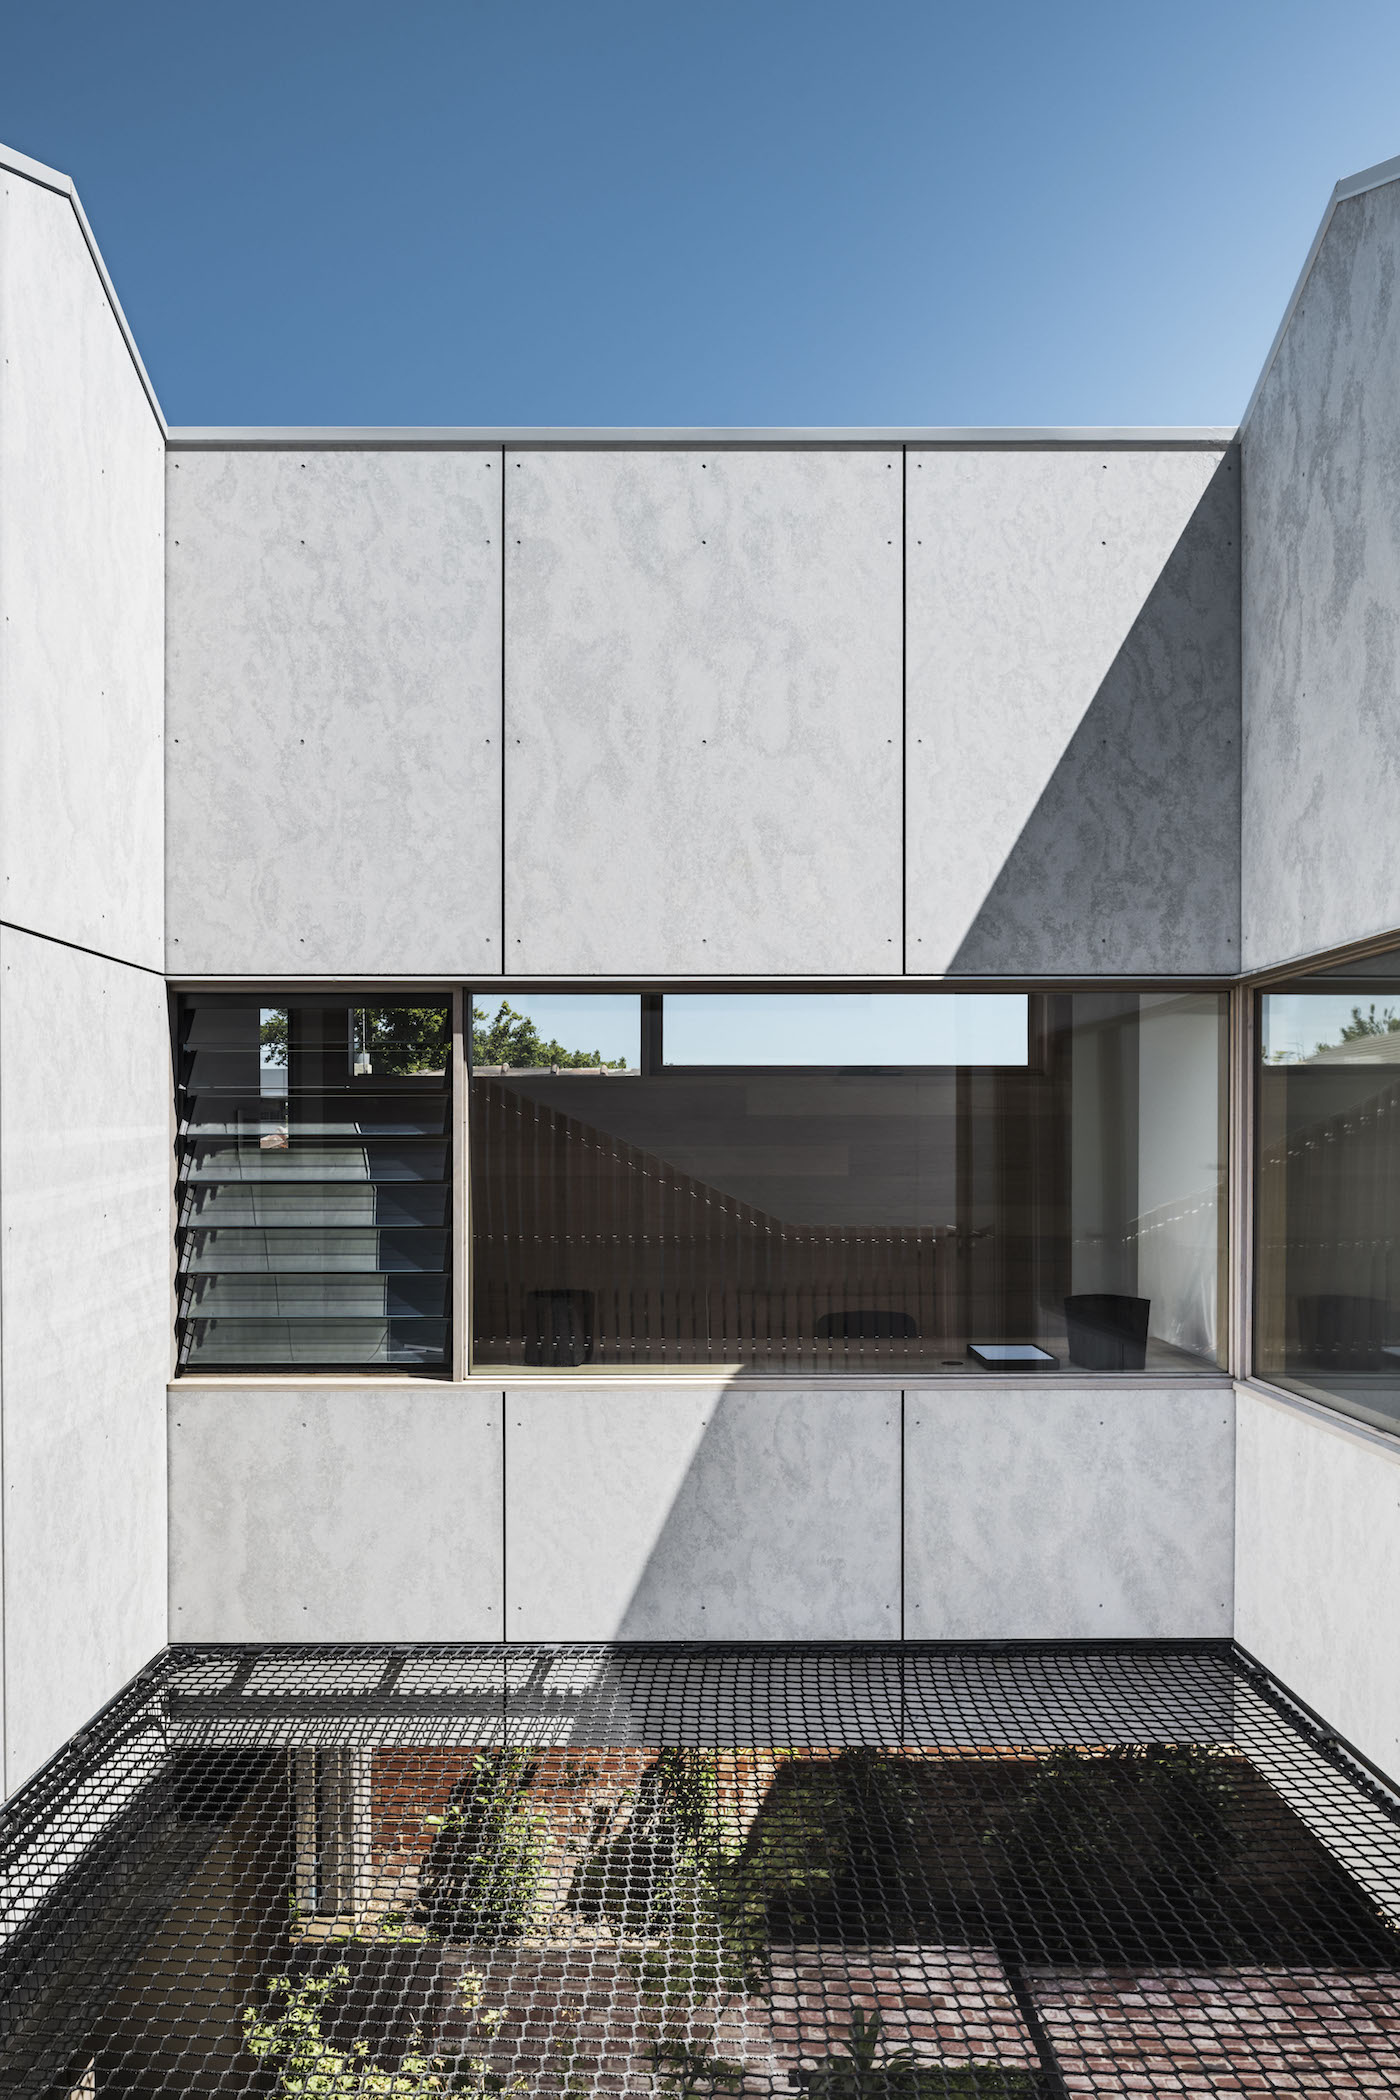 Internal courtyard with suspended netting